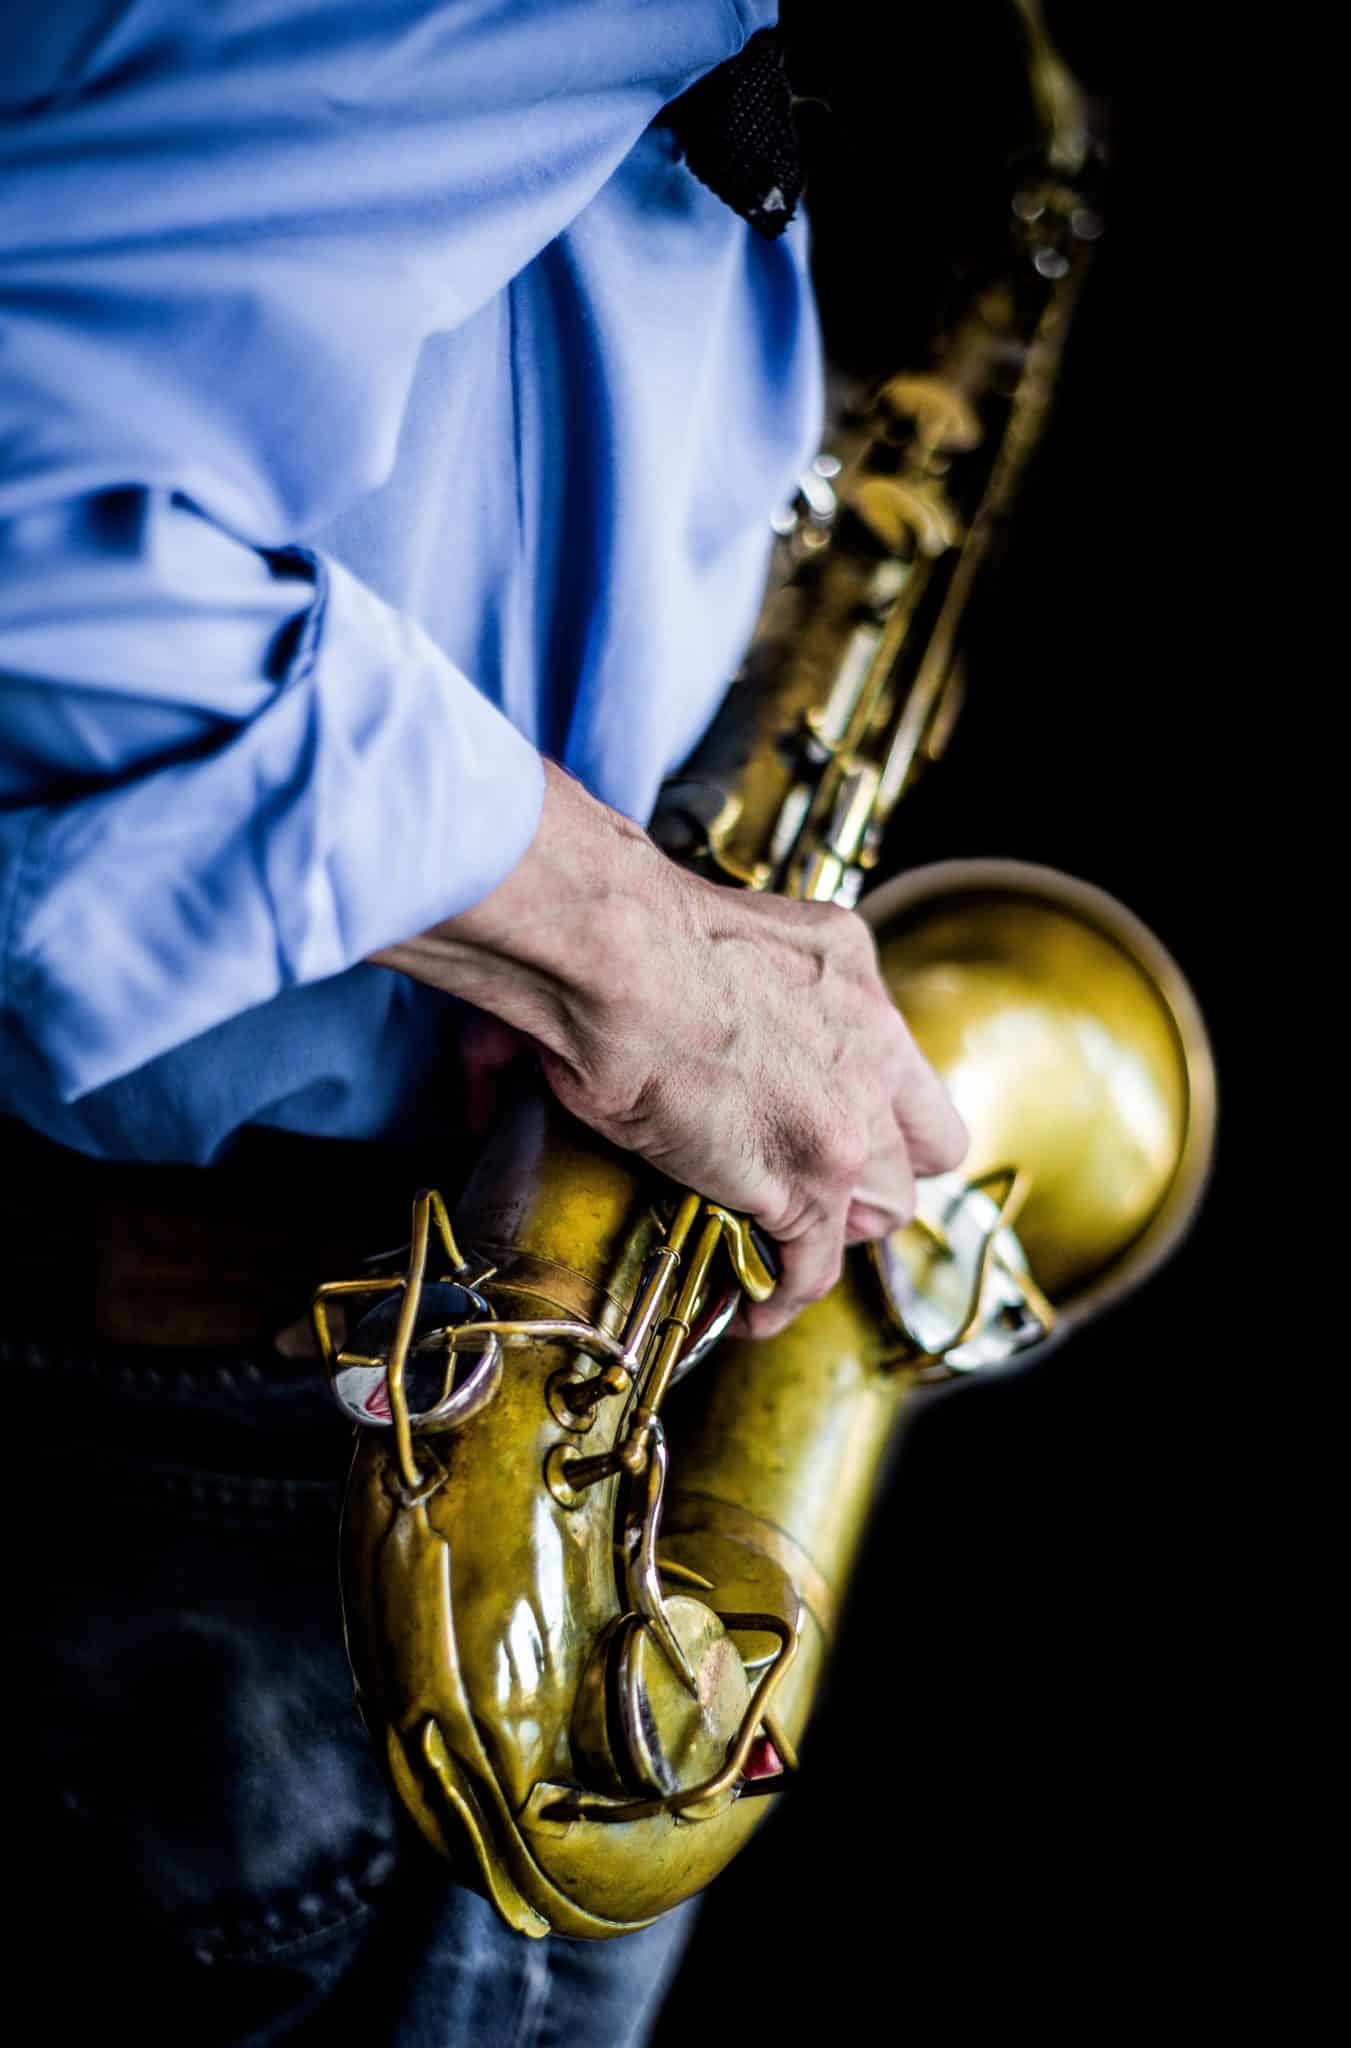 Man in blue shirt playing the saxophone